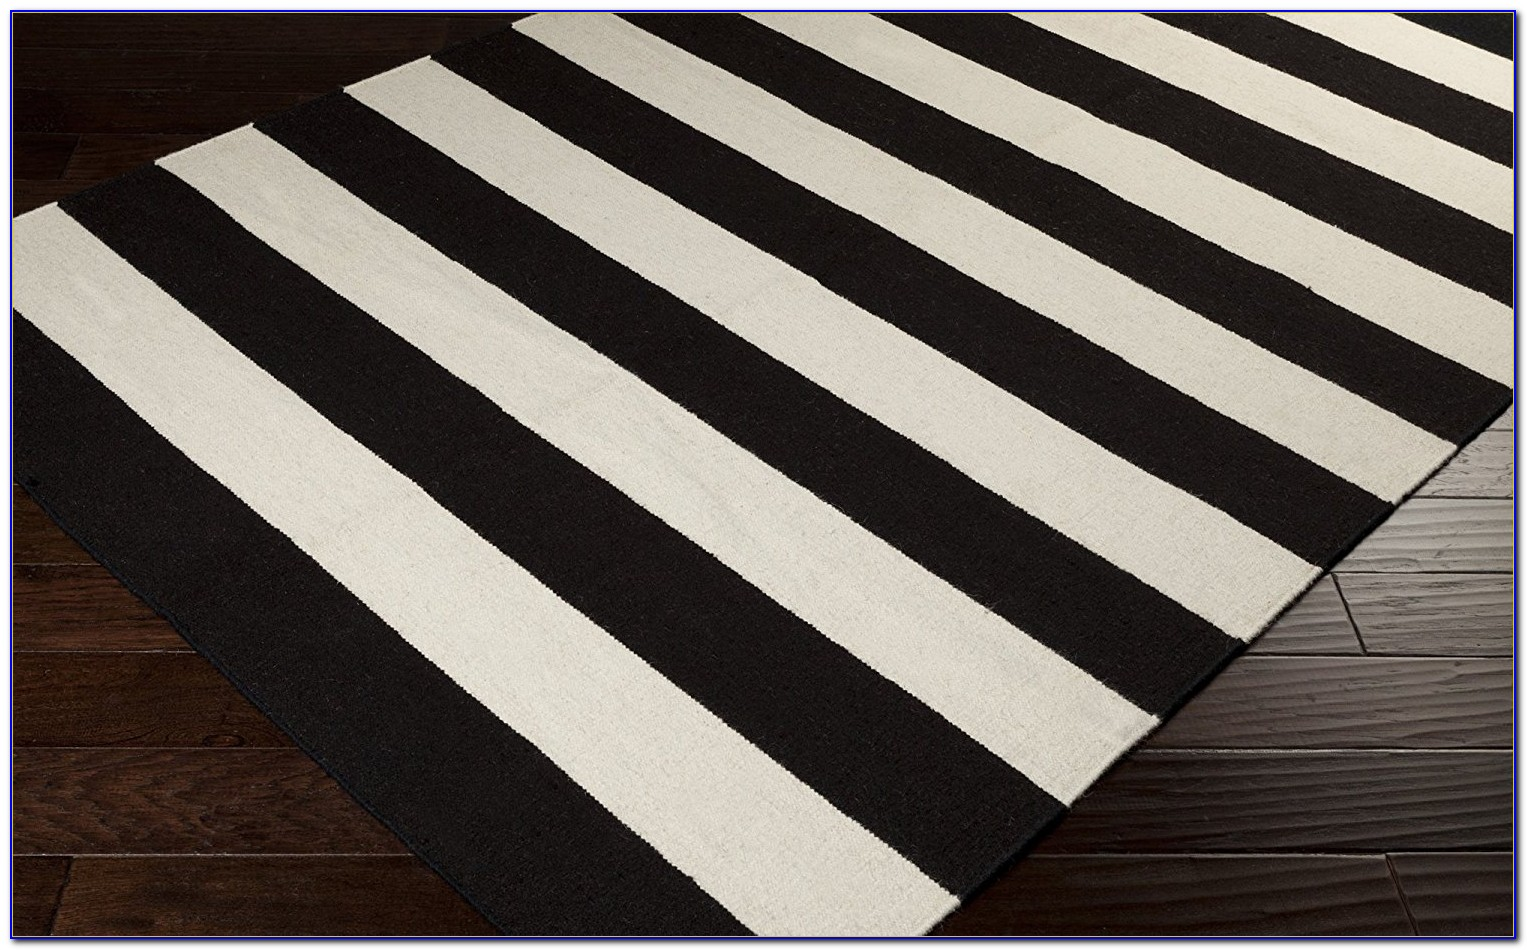 Large Black And White Checkered Rug